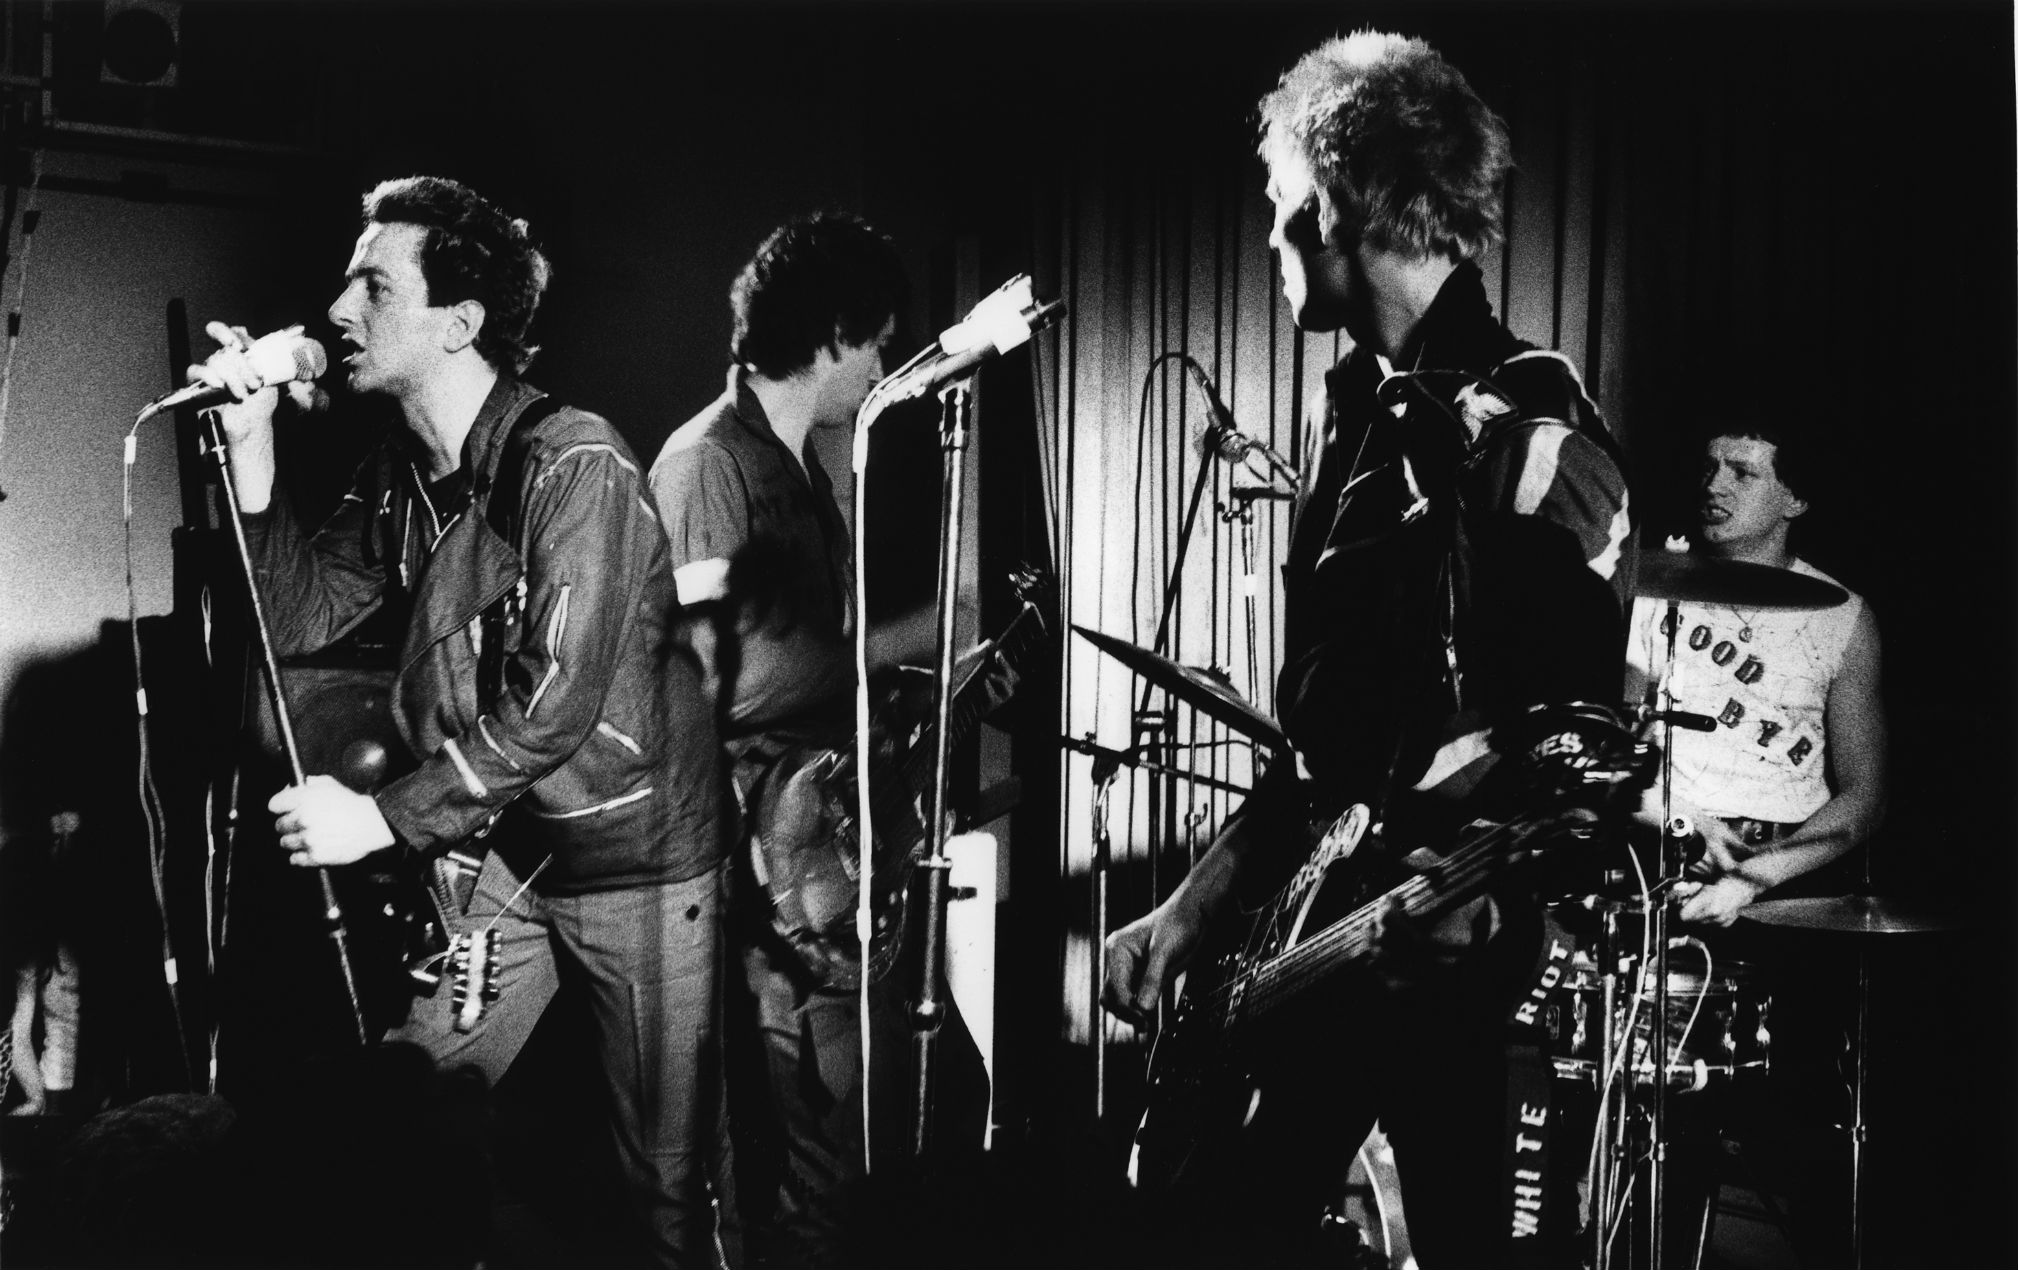 A new exhibition marking the 40th anniversary of The Clash's 'London Calling' is coming to the capital